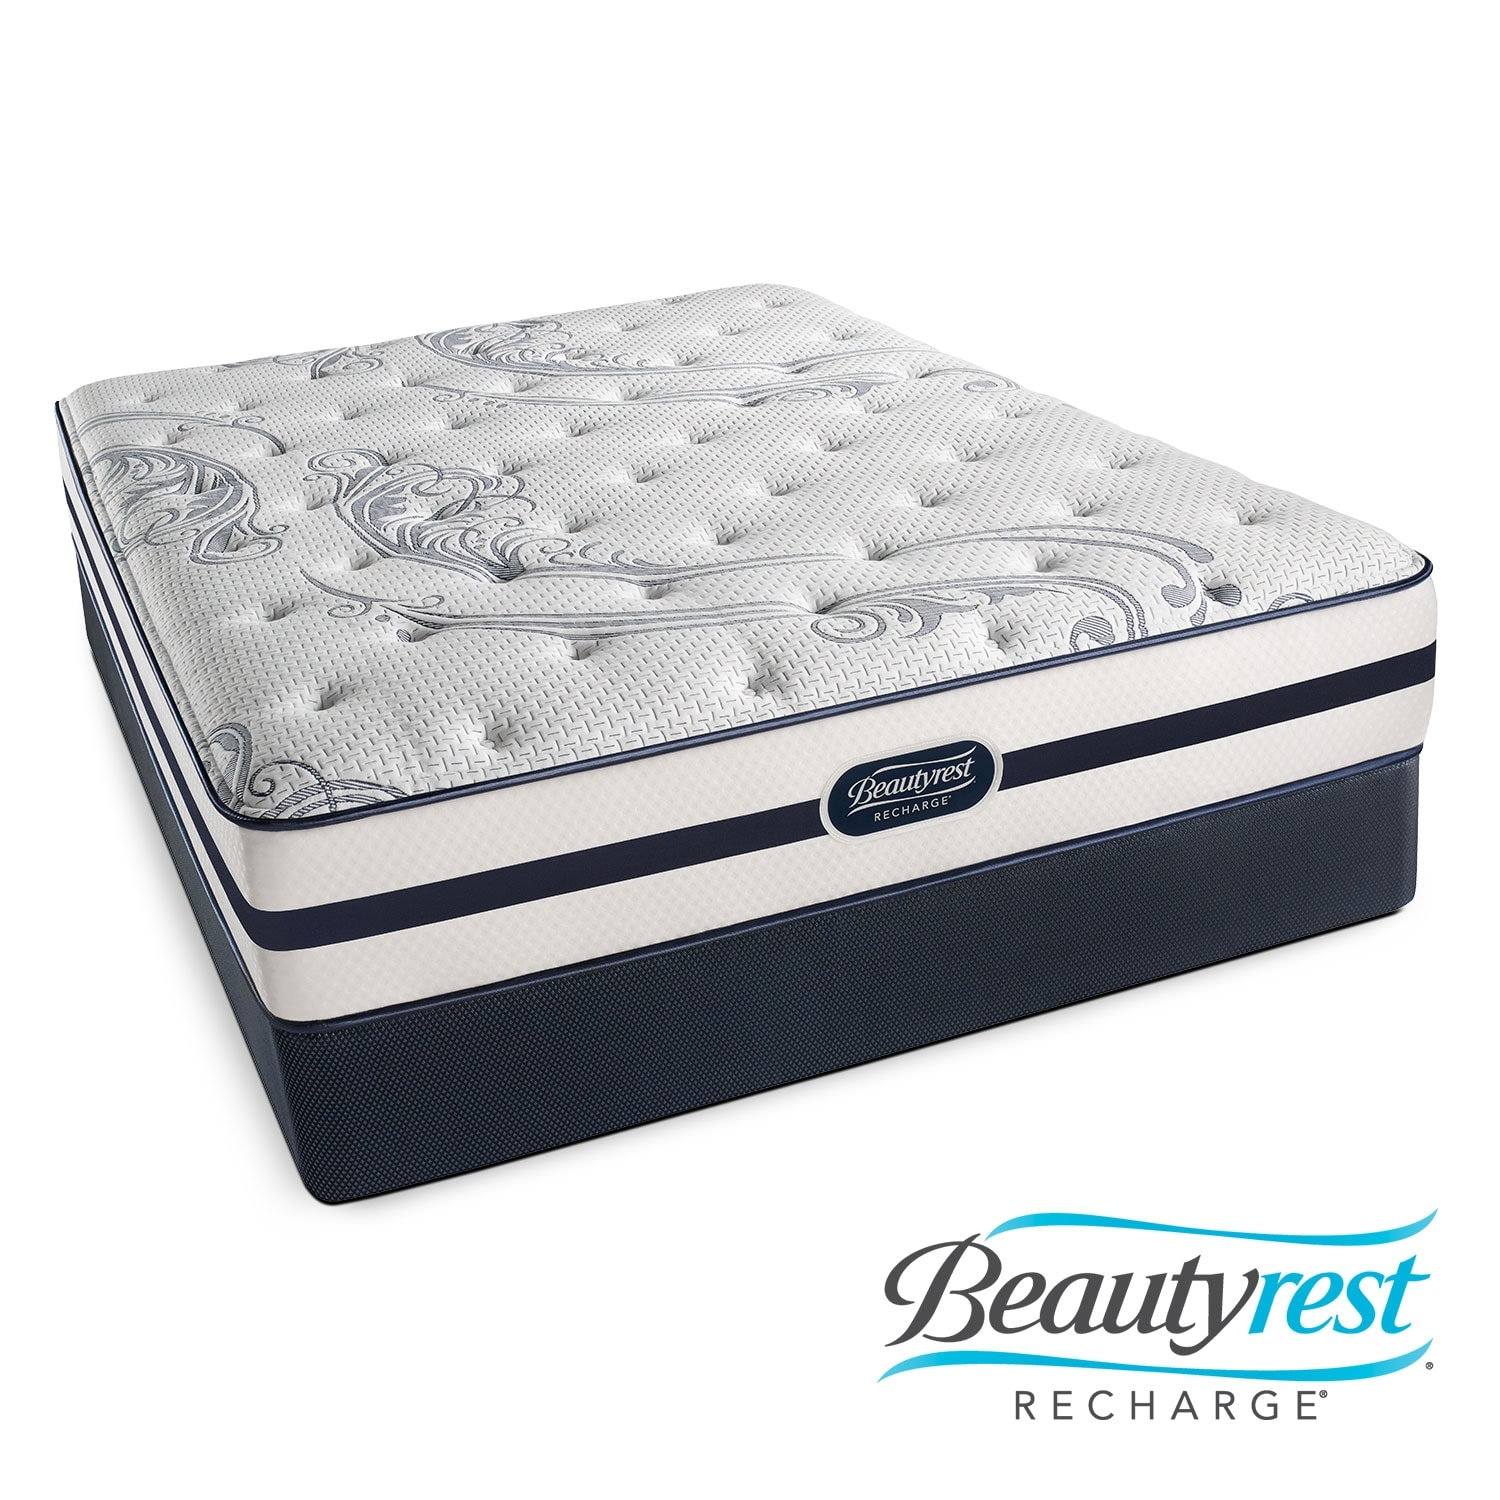 Mattresses and Bedding - Alisa Luxury Firm Twin Mattress and Foundation Set